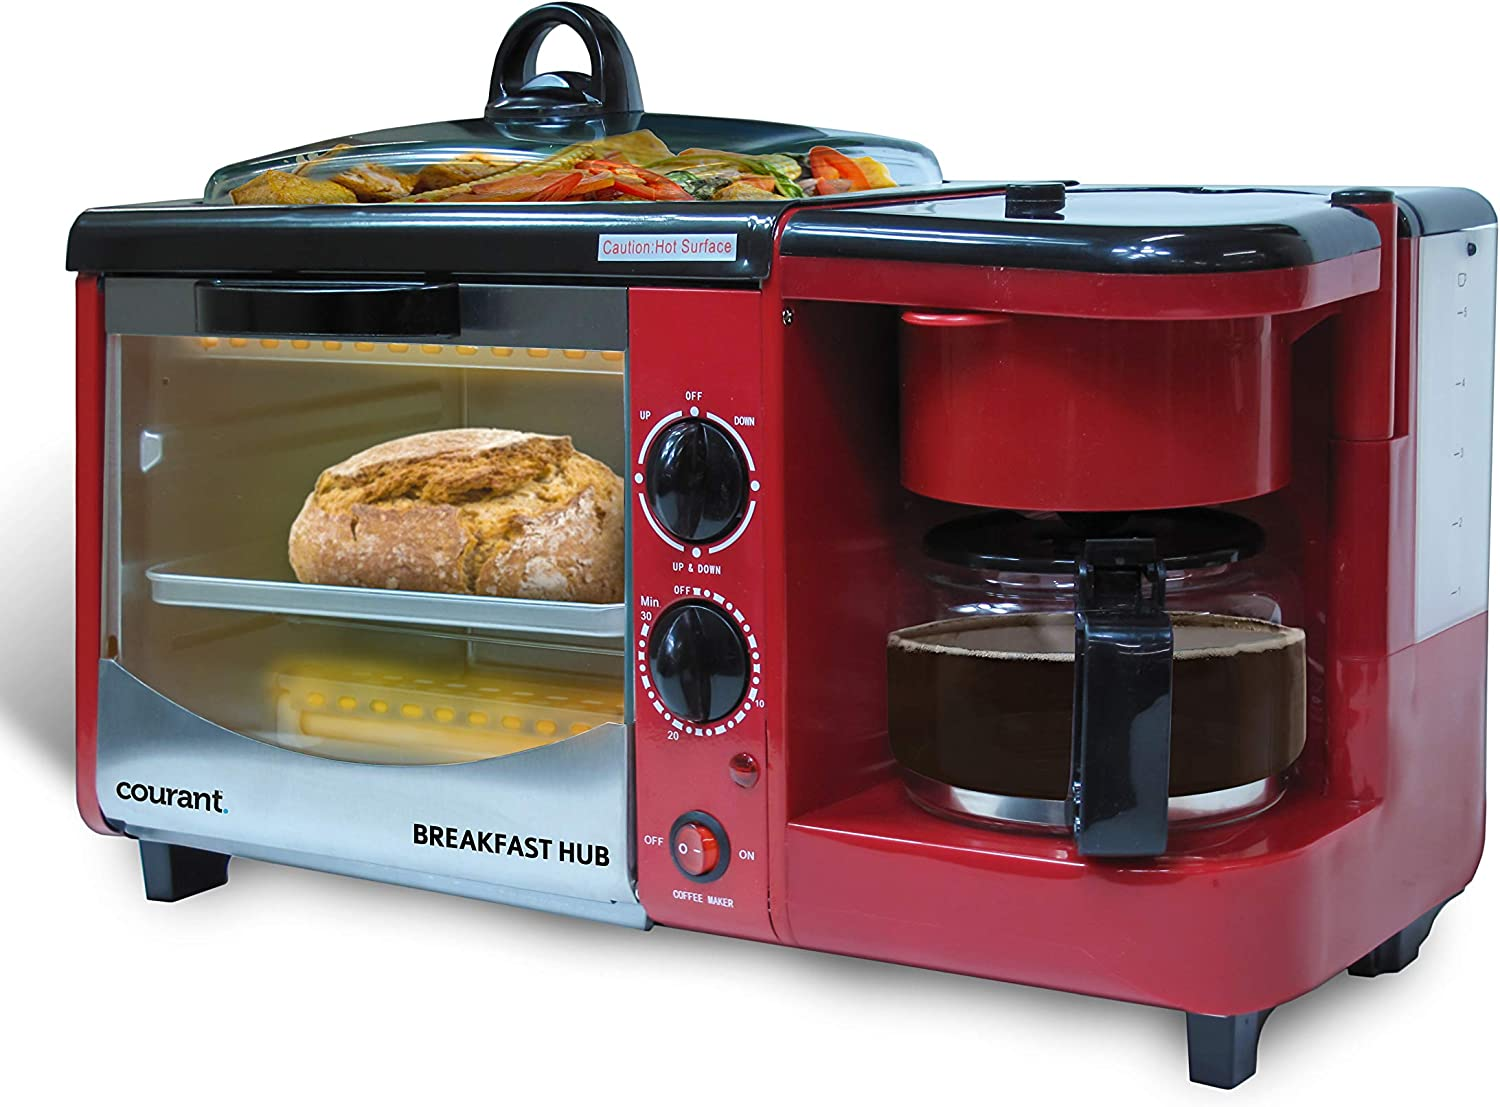 Courant: CBH-4601R 3-in-1 Multifunction Breakfast Hub